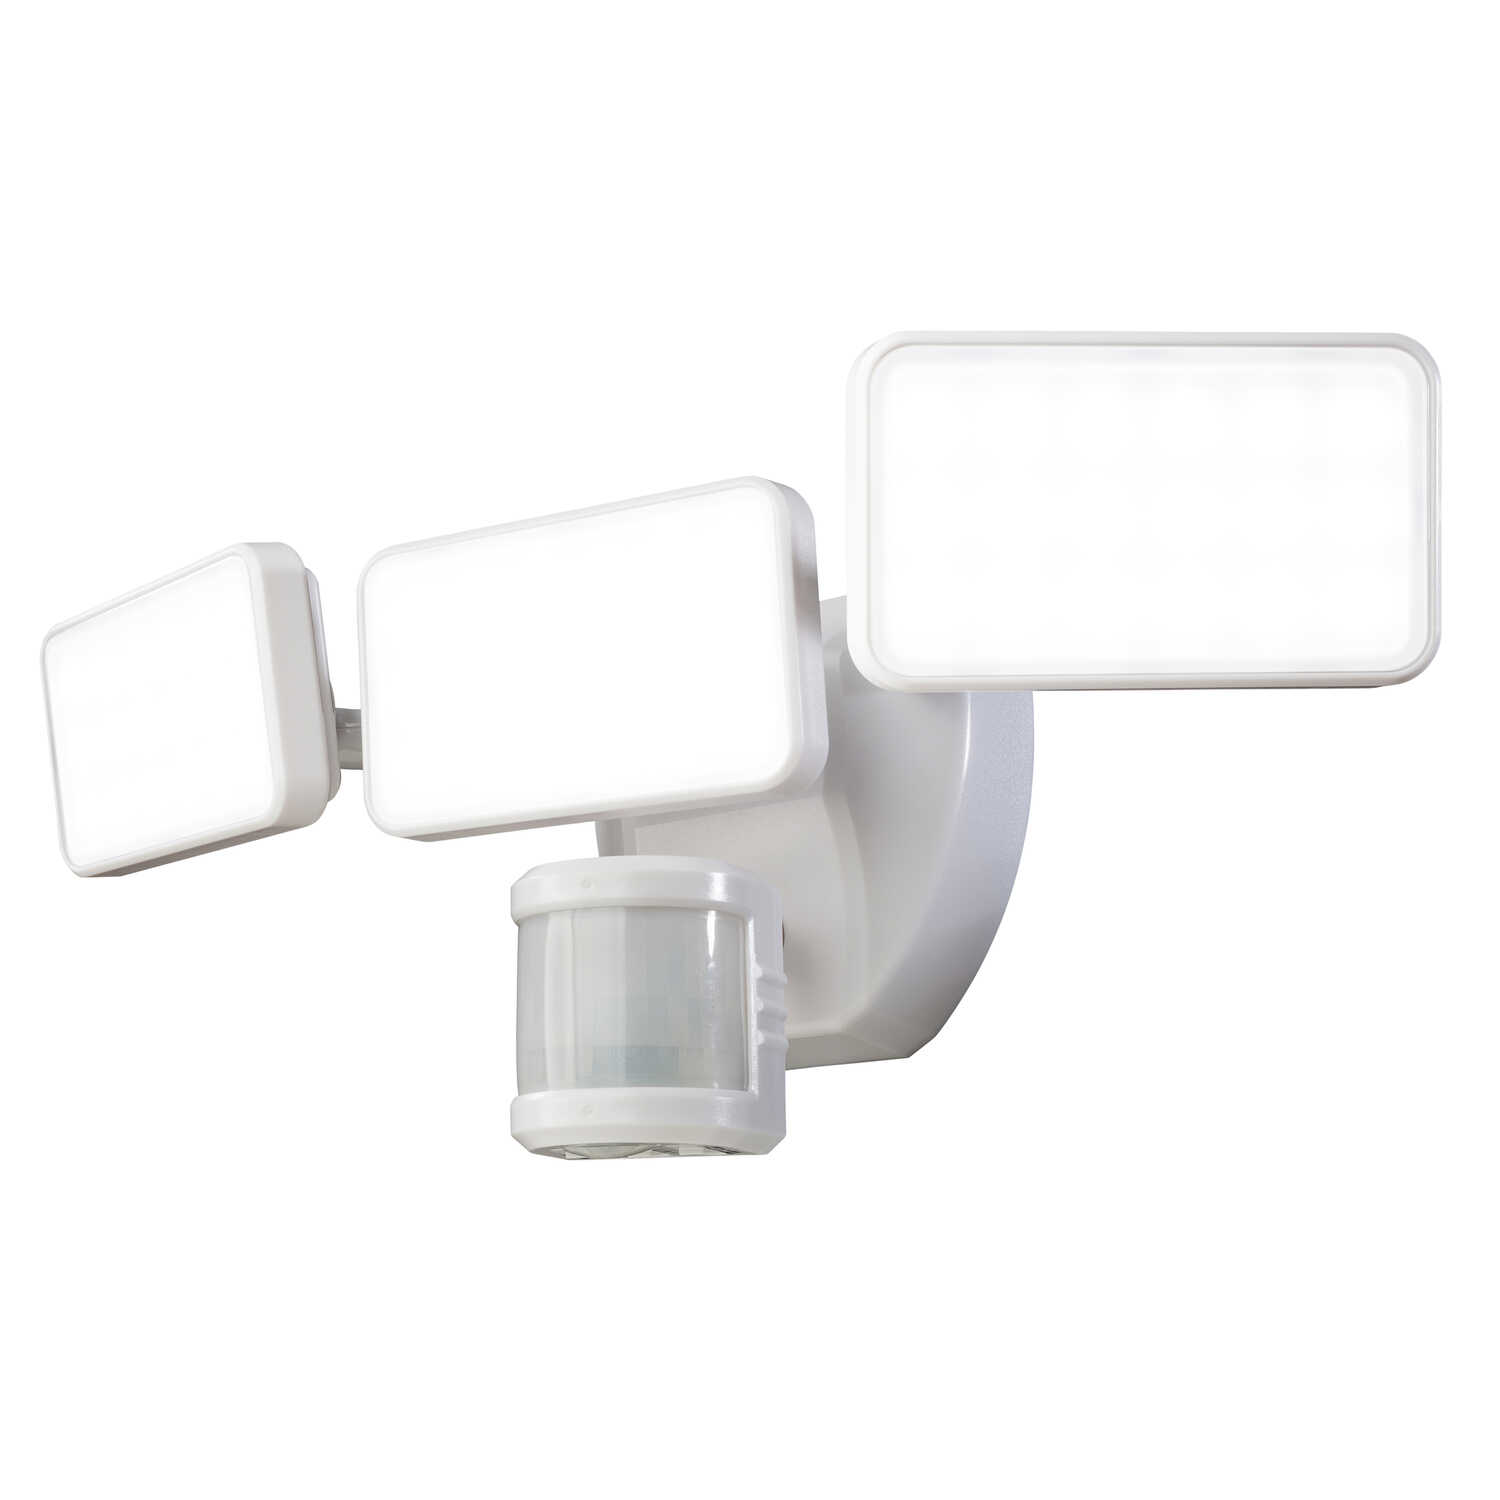 Heath Zenith  Motion-Sensing  Hardwired  LED  White  Security Wall Light